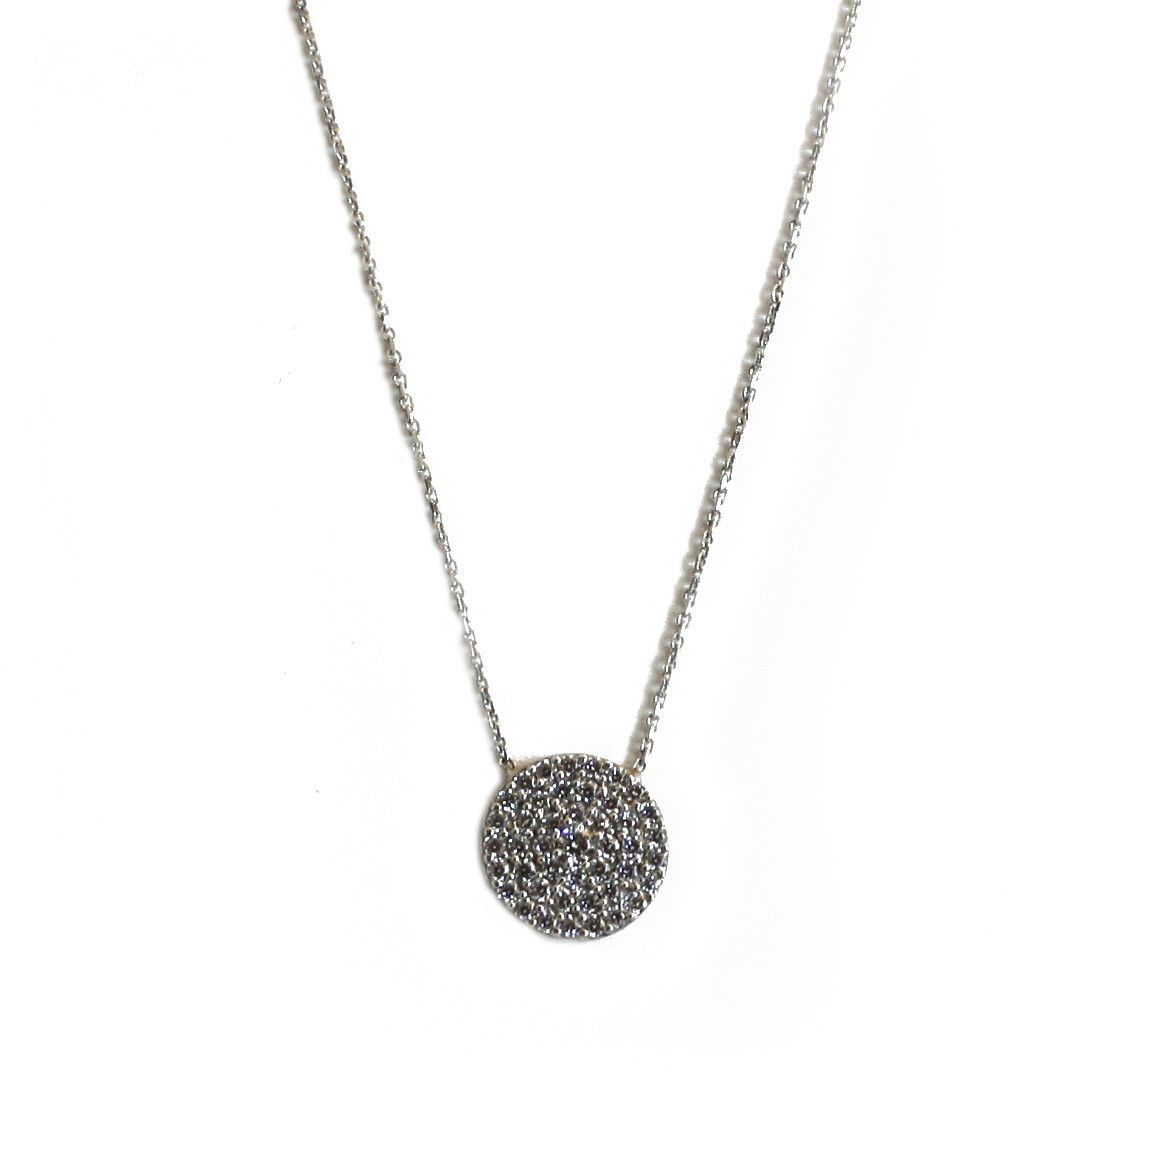 Peter & Gabby CZ Disc Necklace (Sterling Silver)